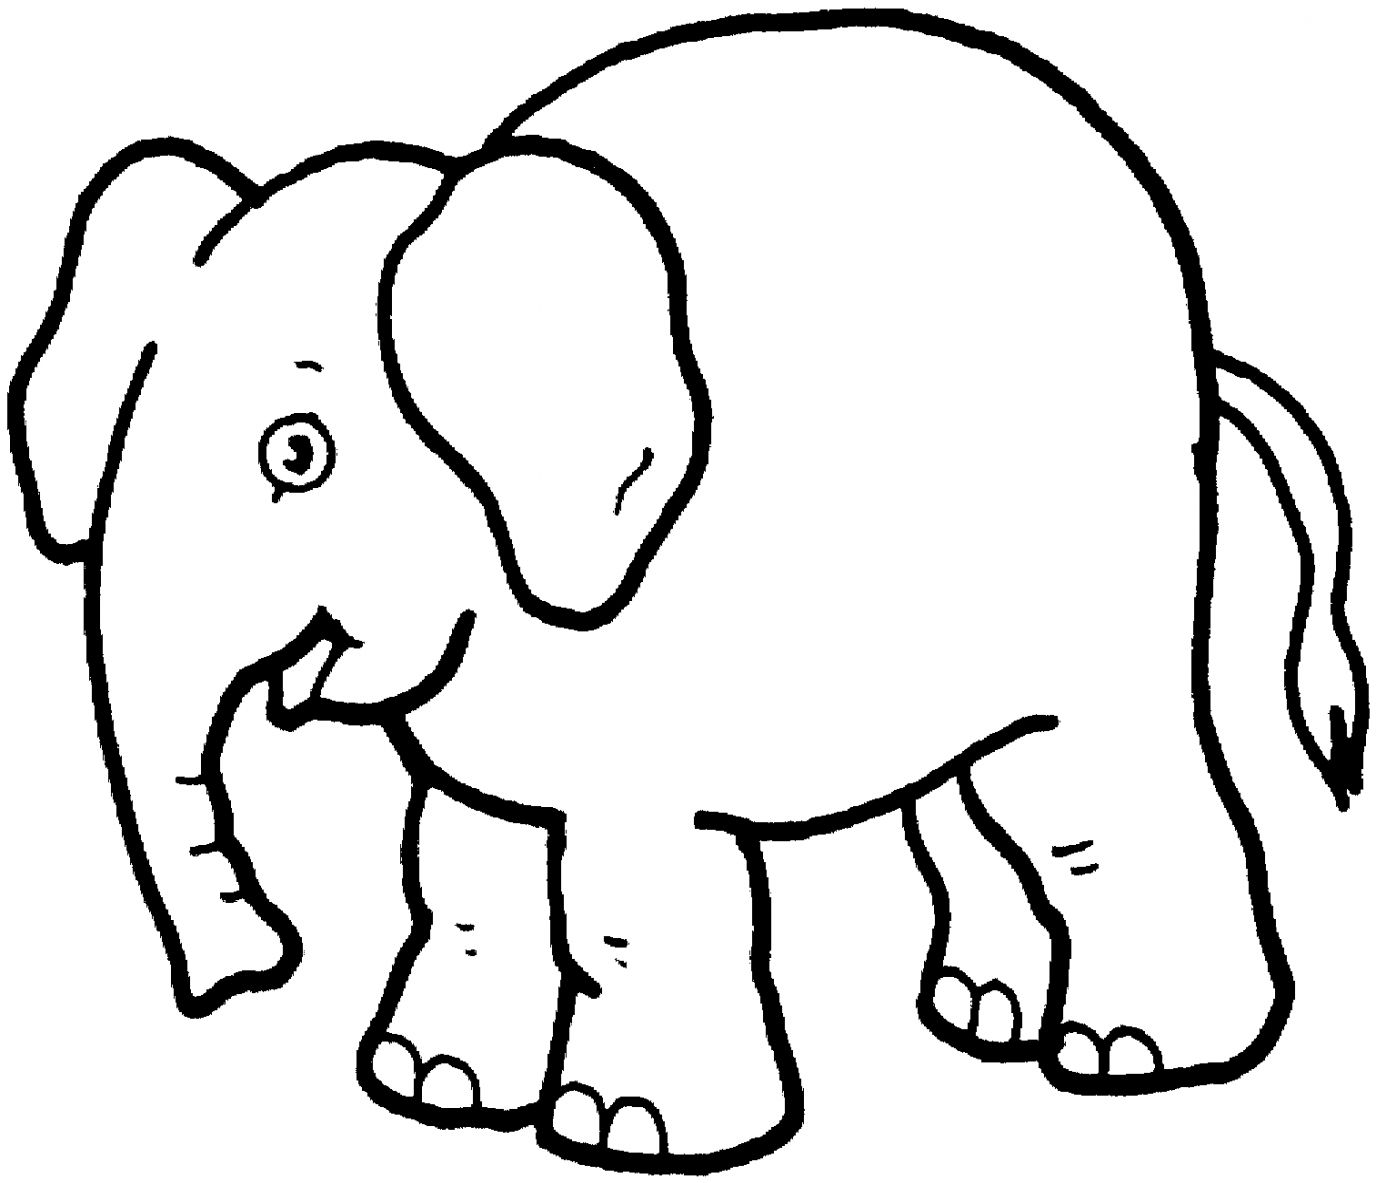 Elephant Black And White Clipart | Wallpapers Warrior